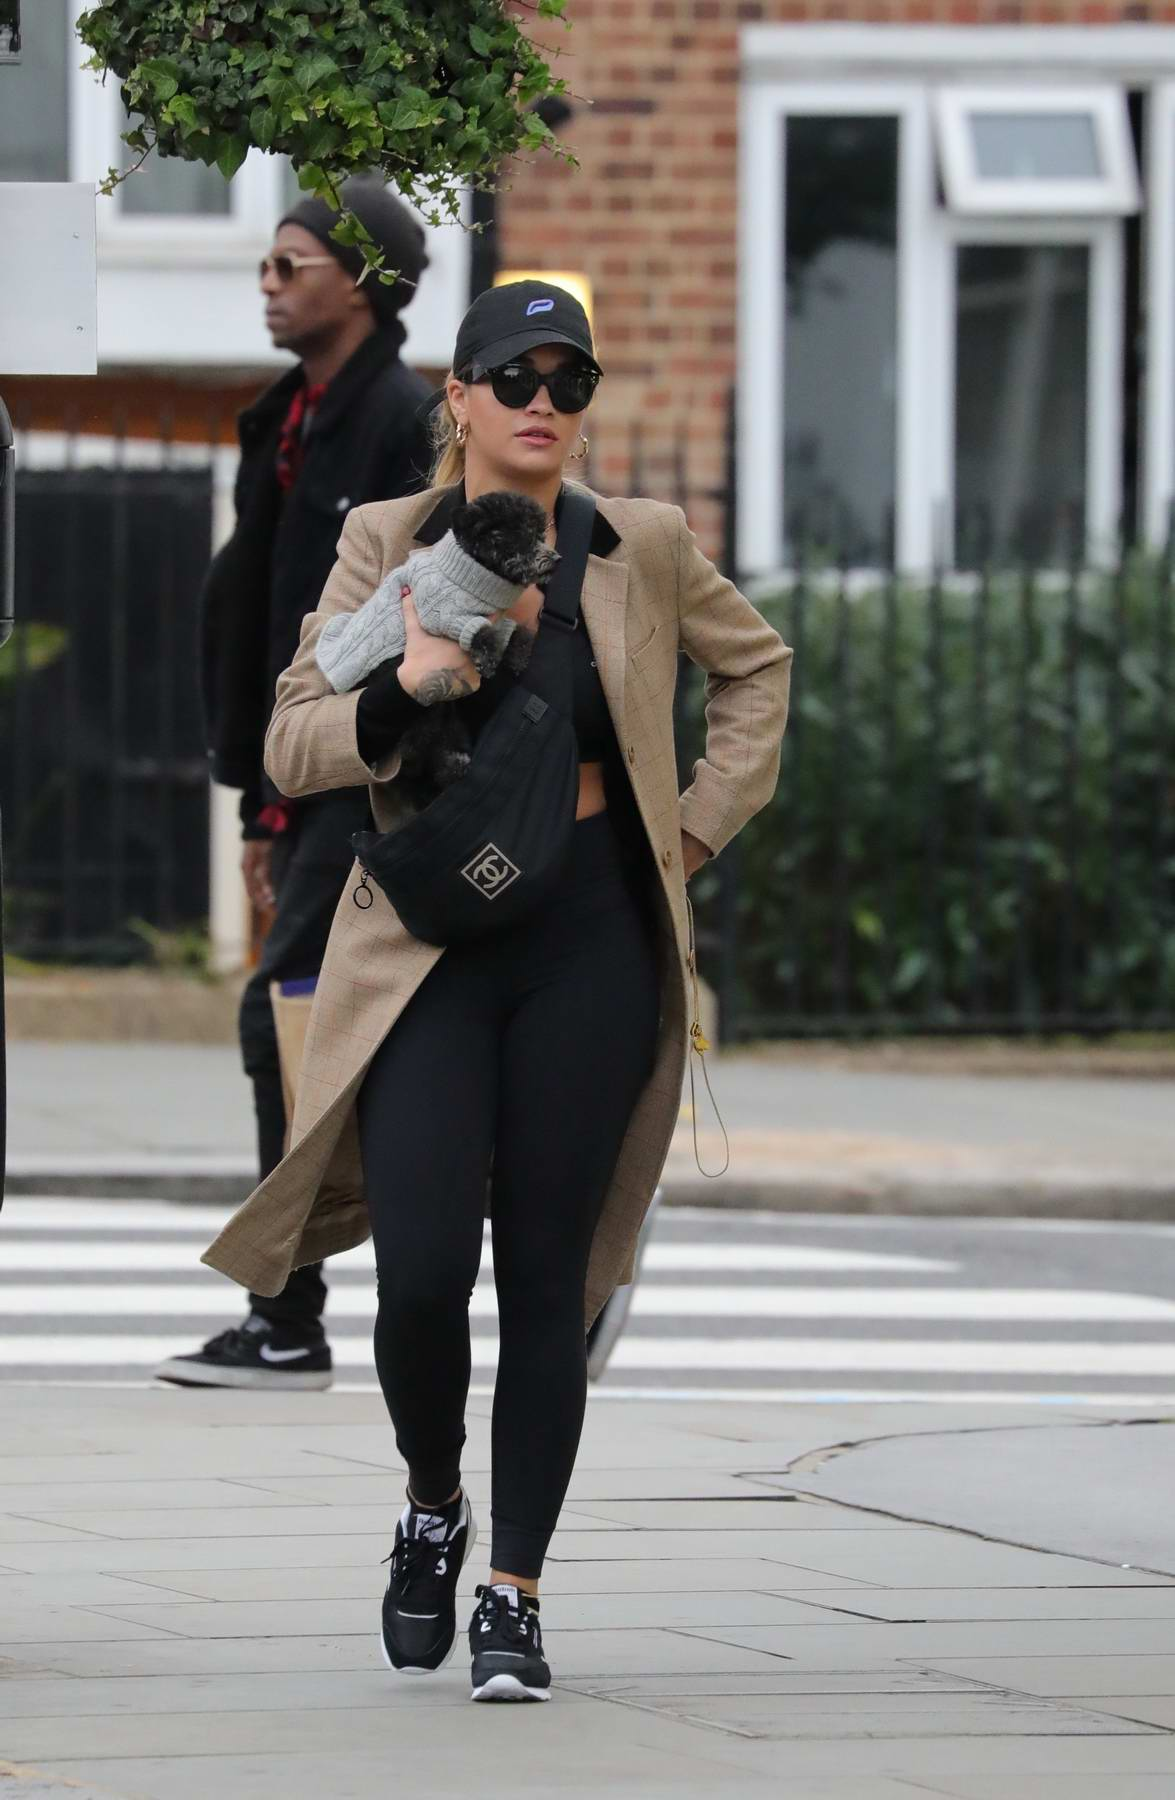 Rita Ora spotted with her dog in Notting Hill, London